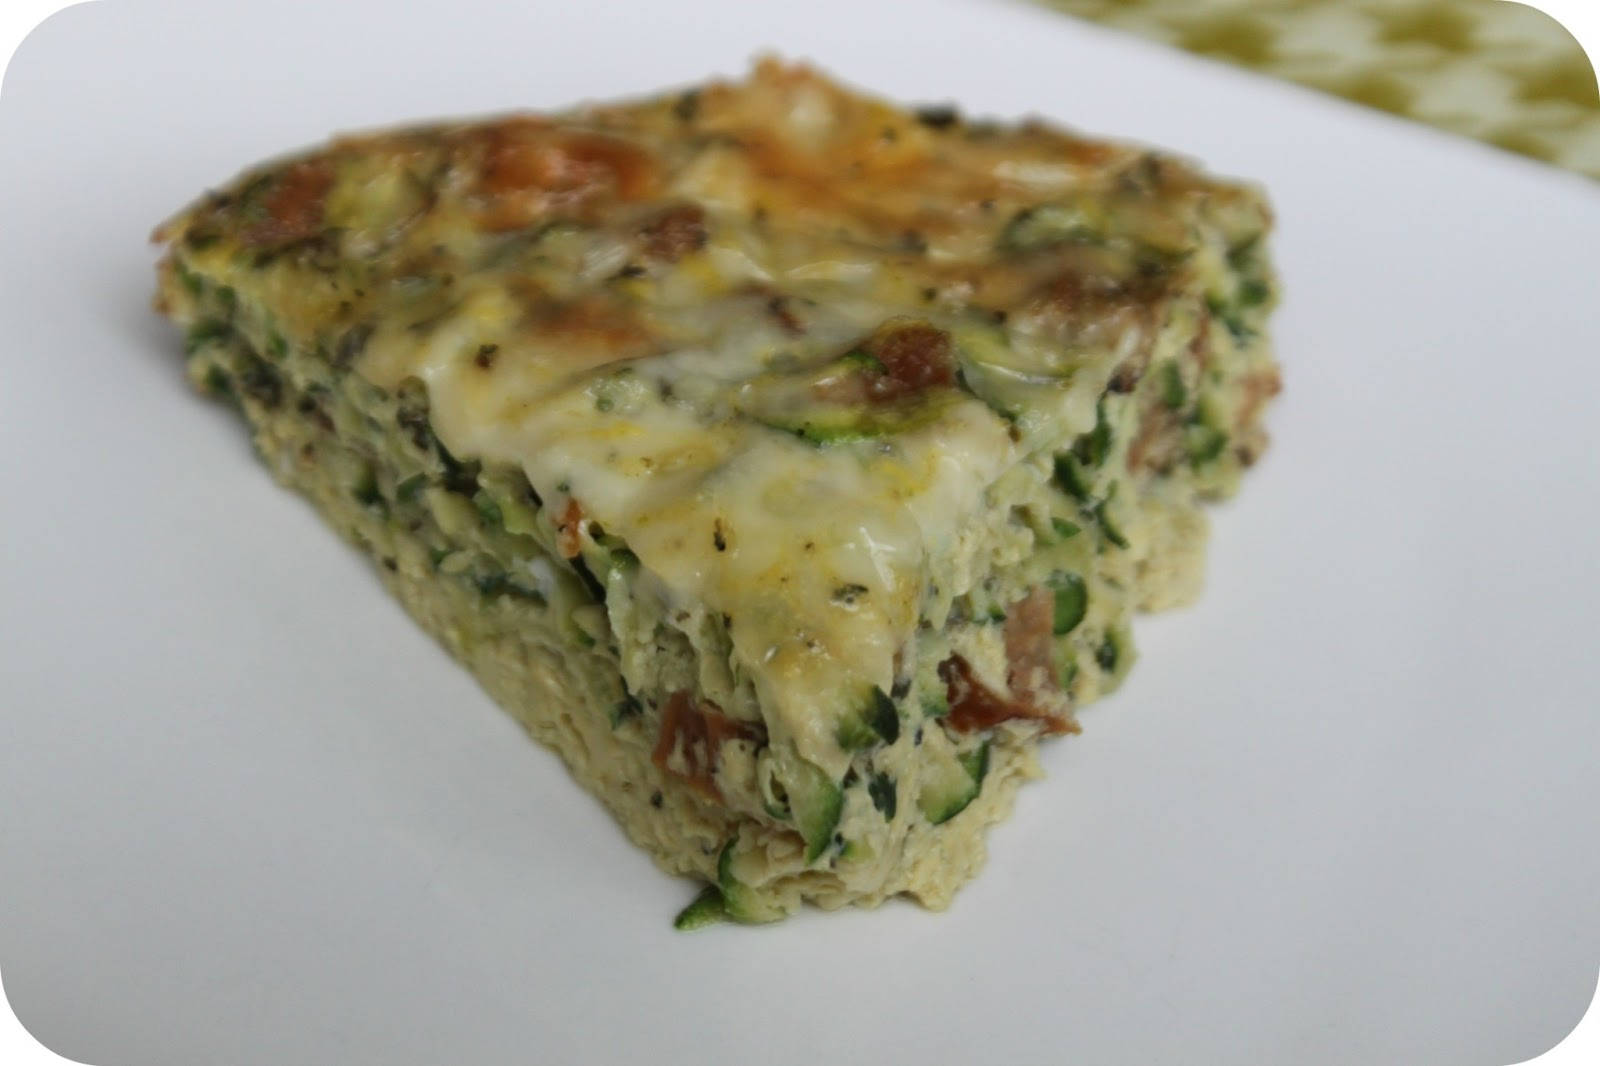 ... Clean and Wheat-Free Zucchini and Lean Italian Turkey Sausage Frittata